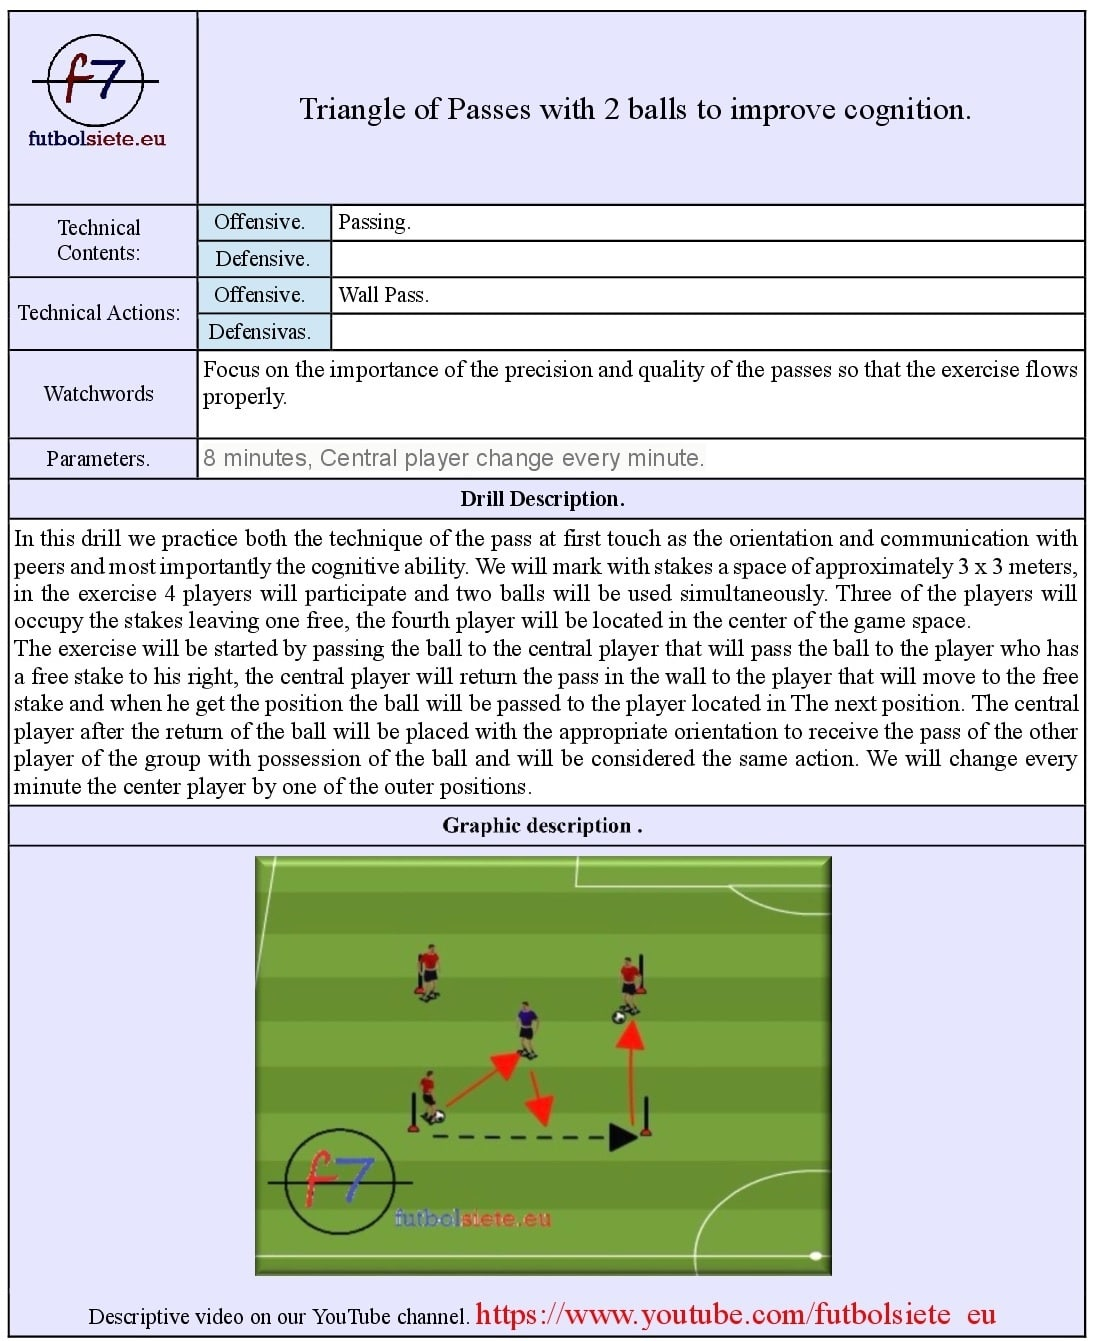 Triangle of Passes with 2 balls to improve cognition.